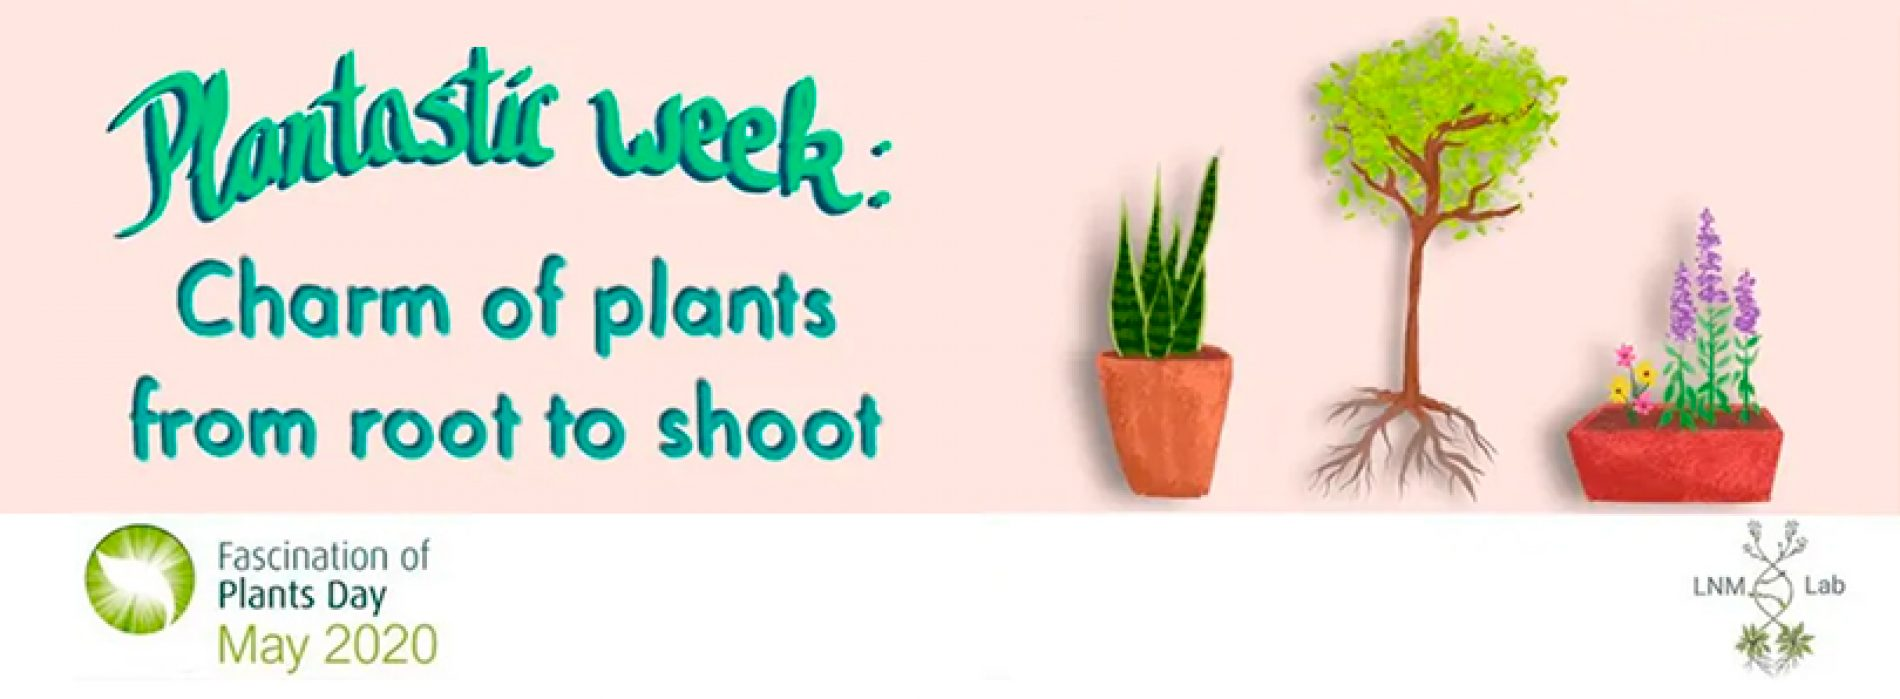 """Fantastic week: the charm of plants from root to shoot"" for FoPD 2020 in Chile"